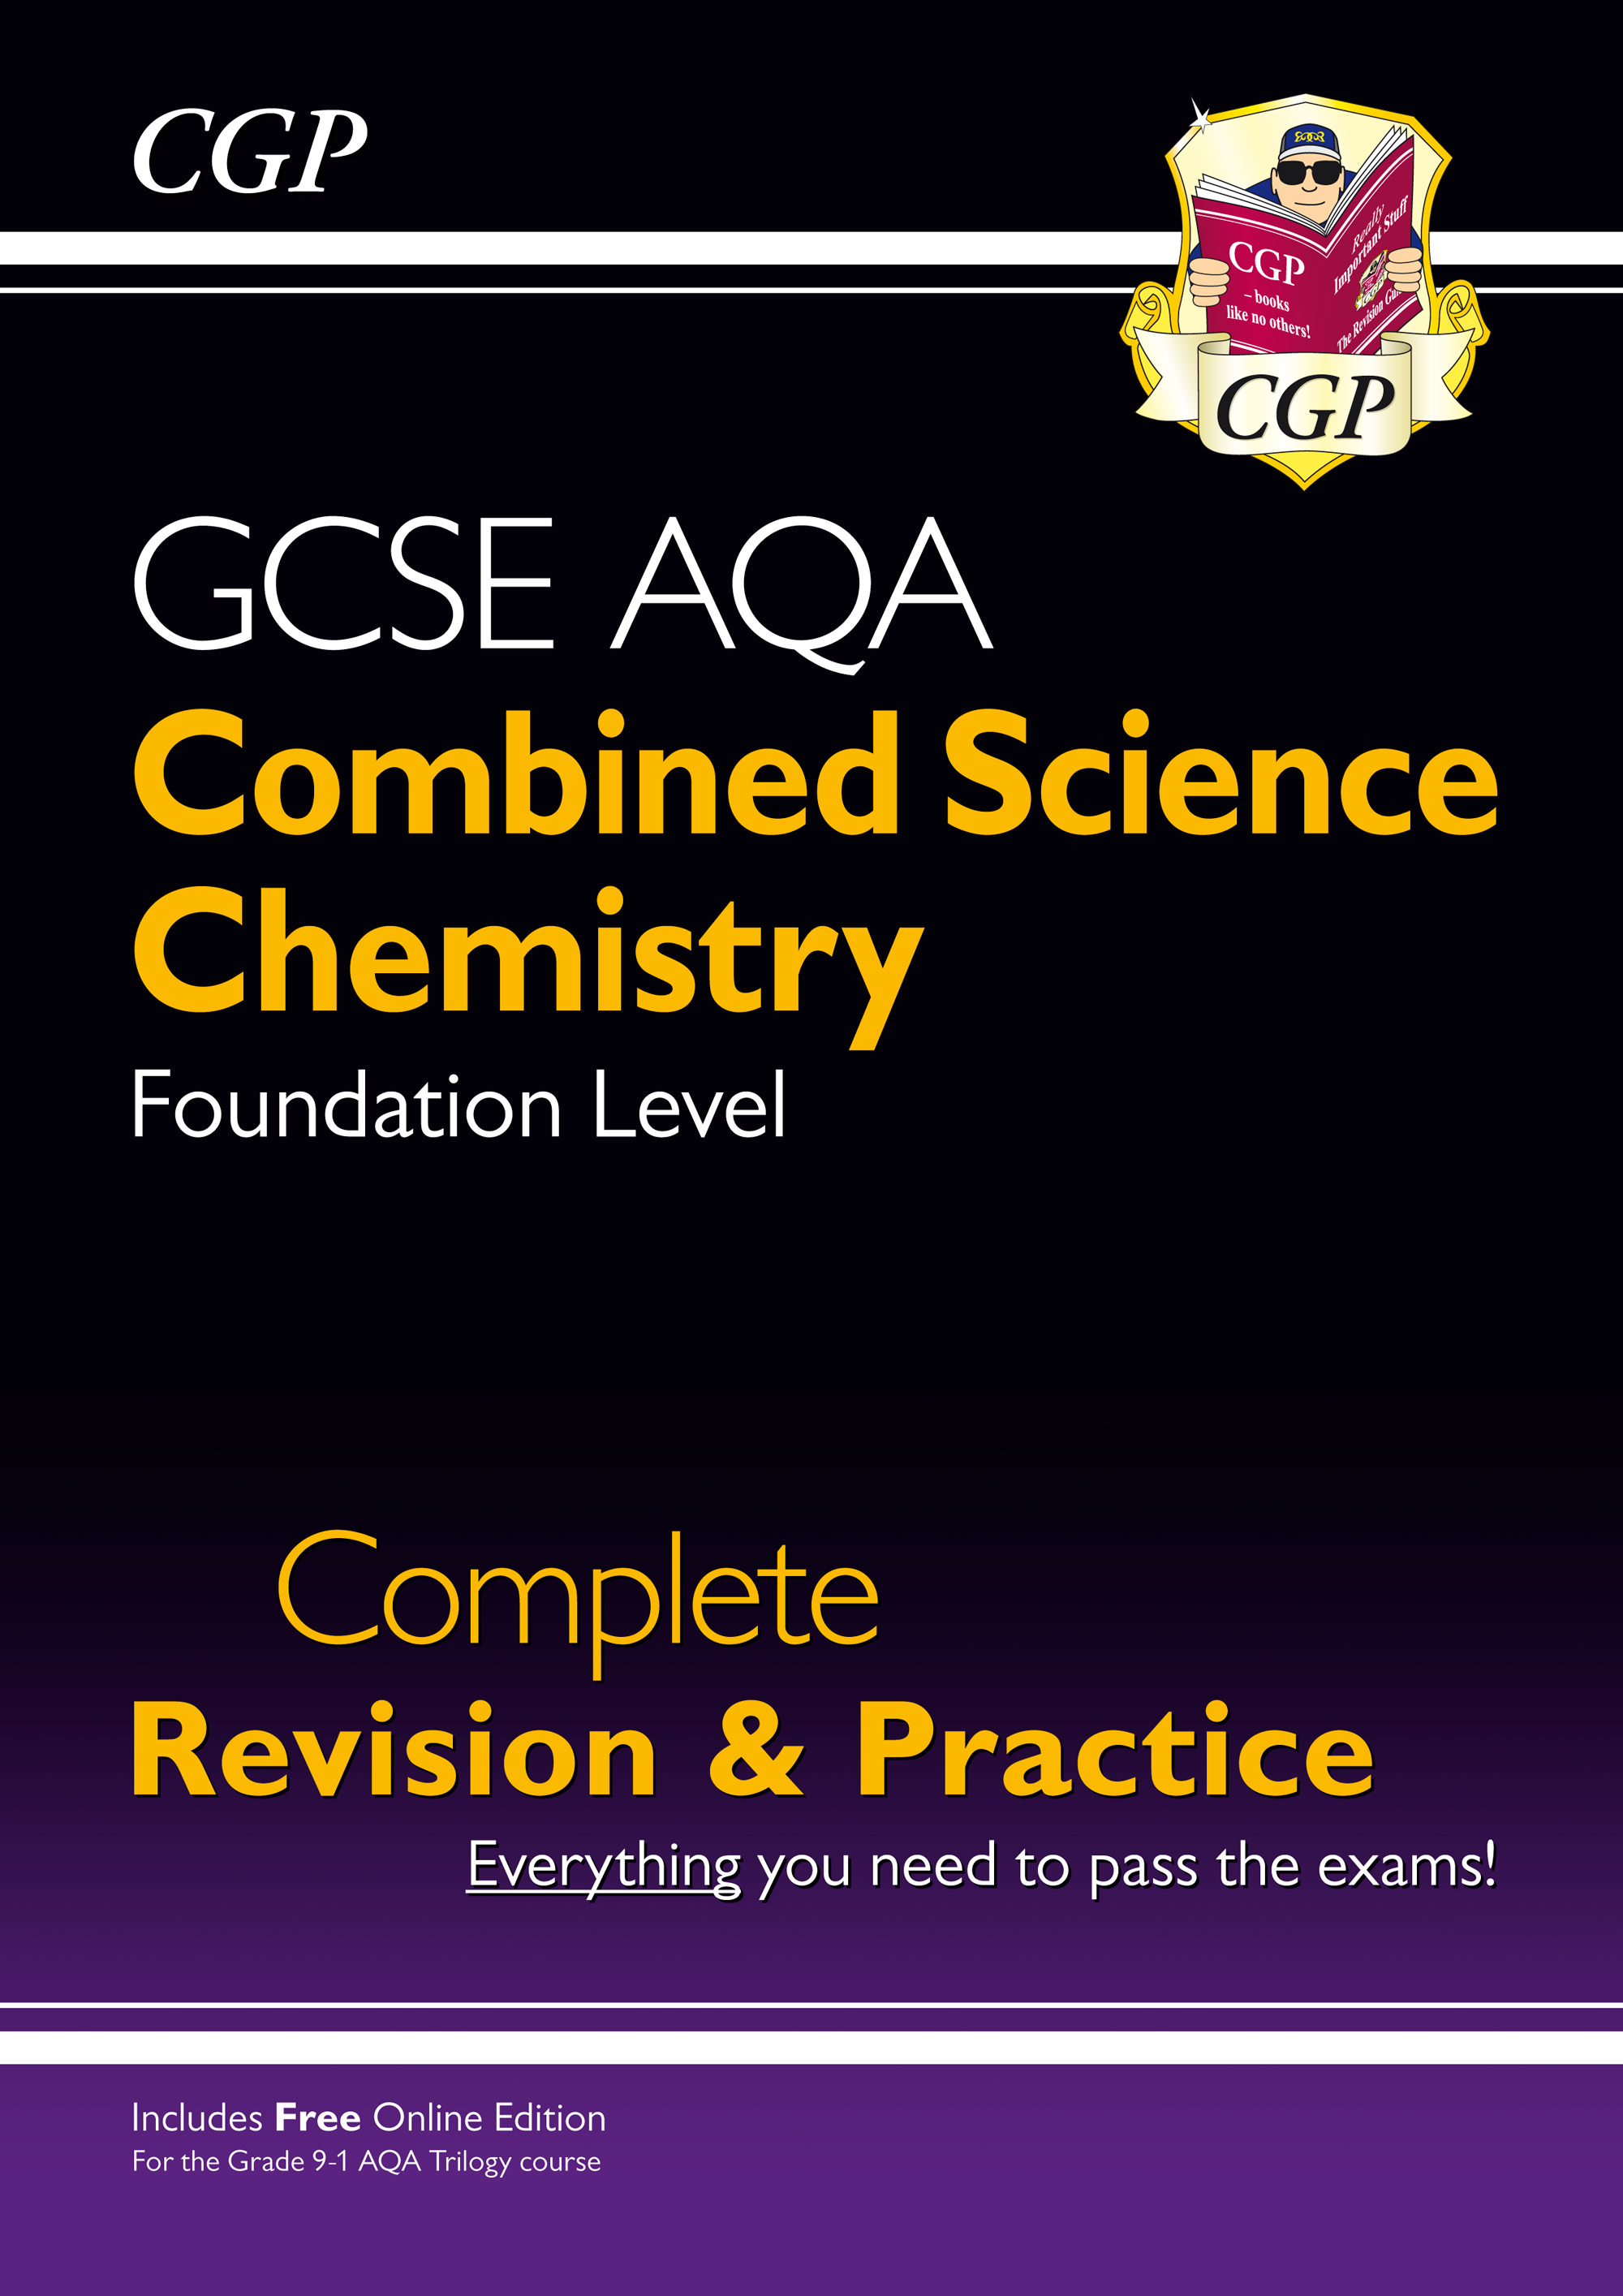 SCCAFS41 - New 9-1 GCSE Combined Science: Chemistry AQA Foundation Complete Revision & Practice with